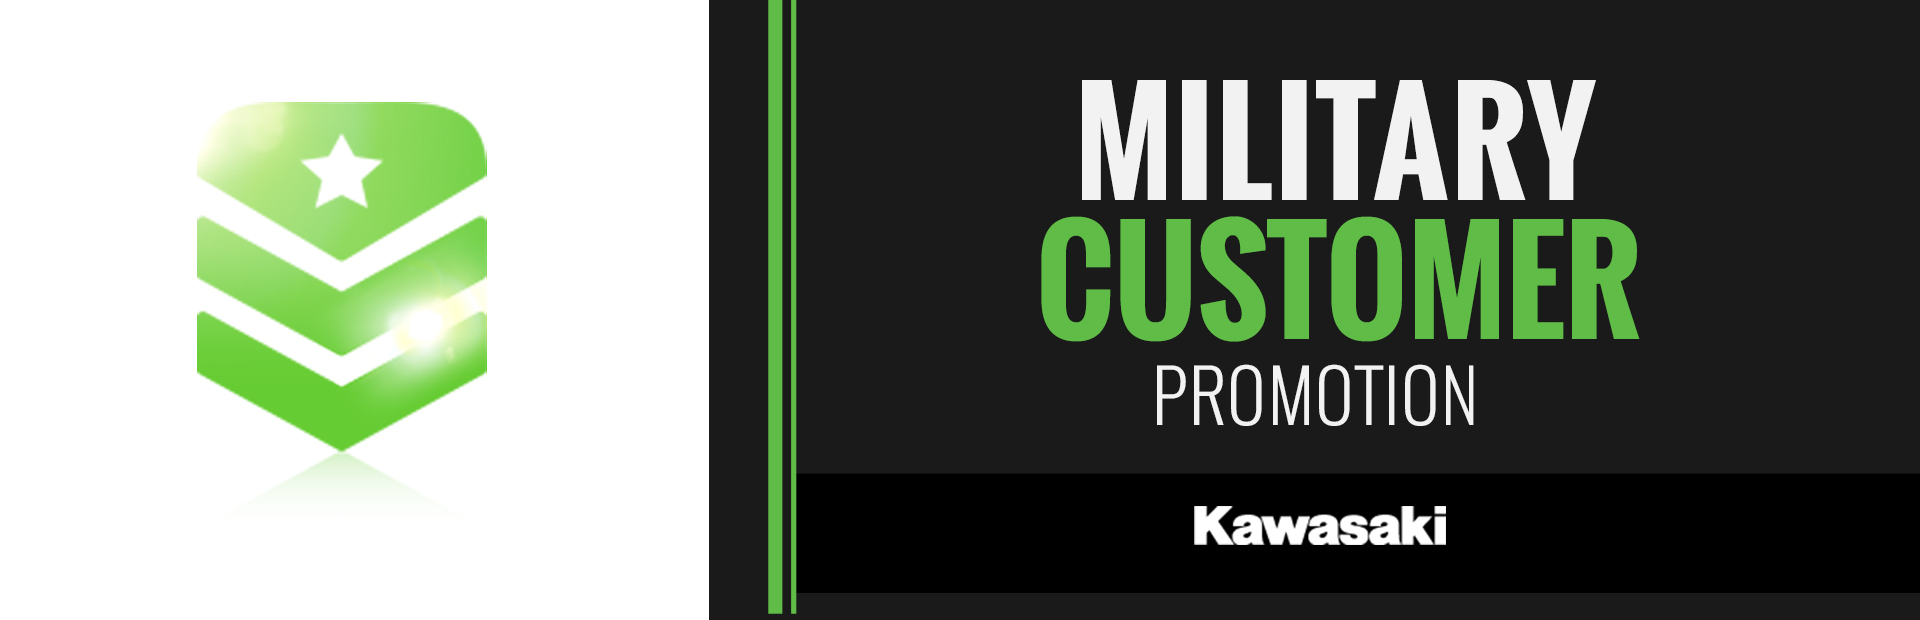 Kawasaki: Military Customer Promotion